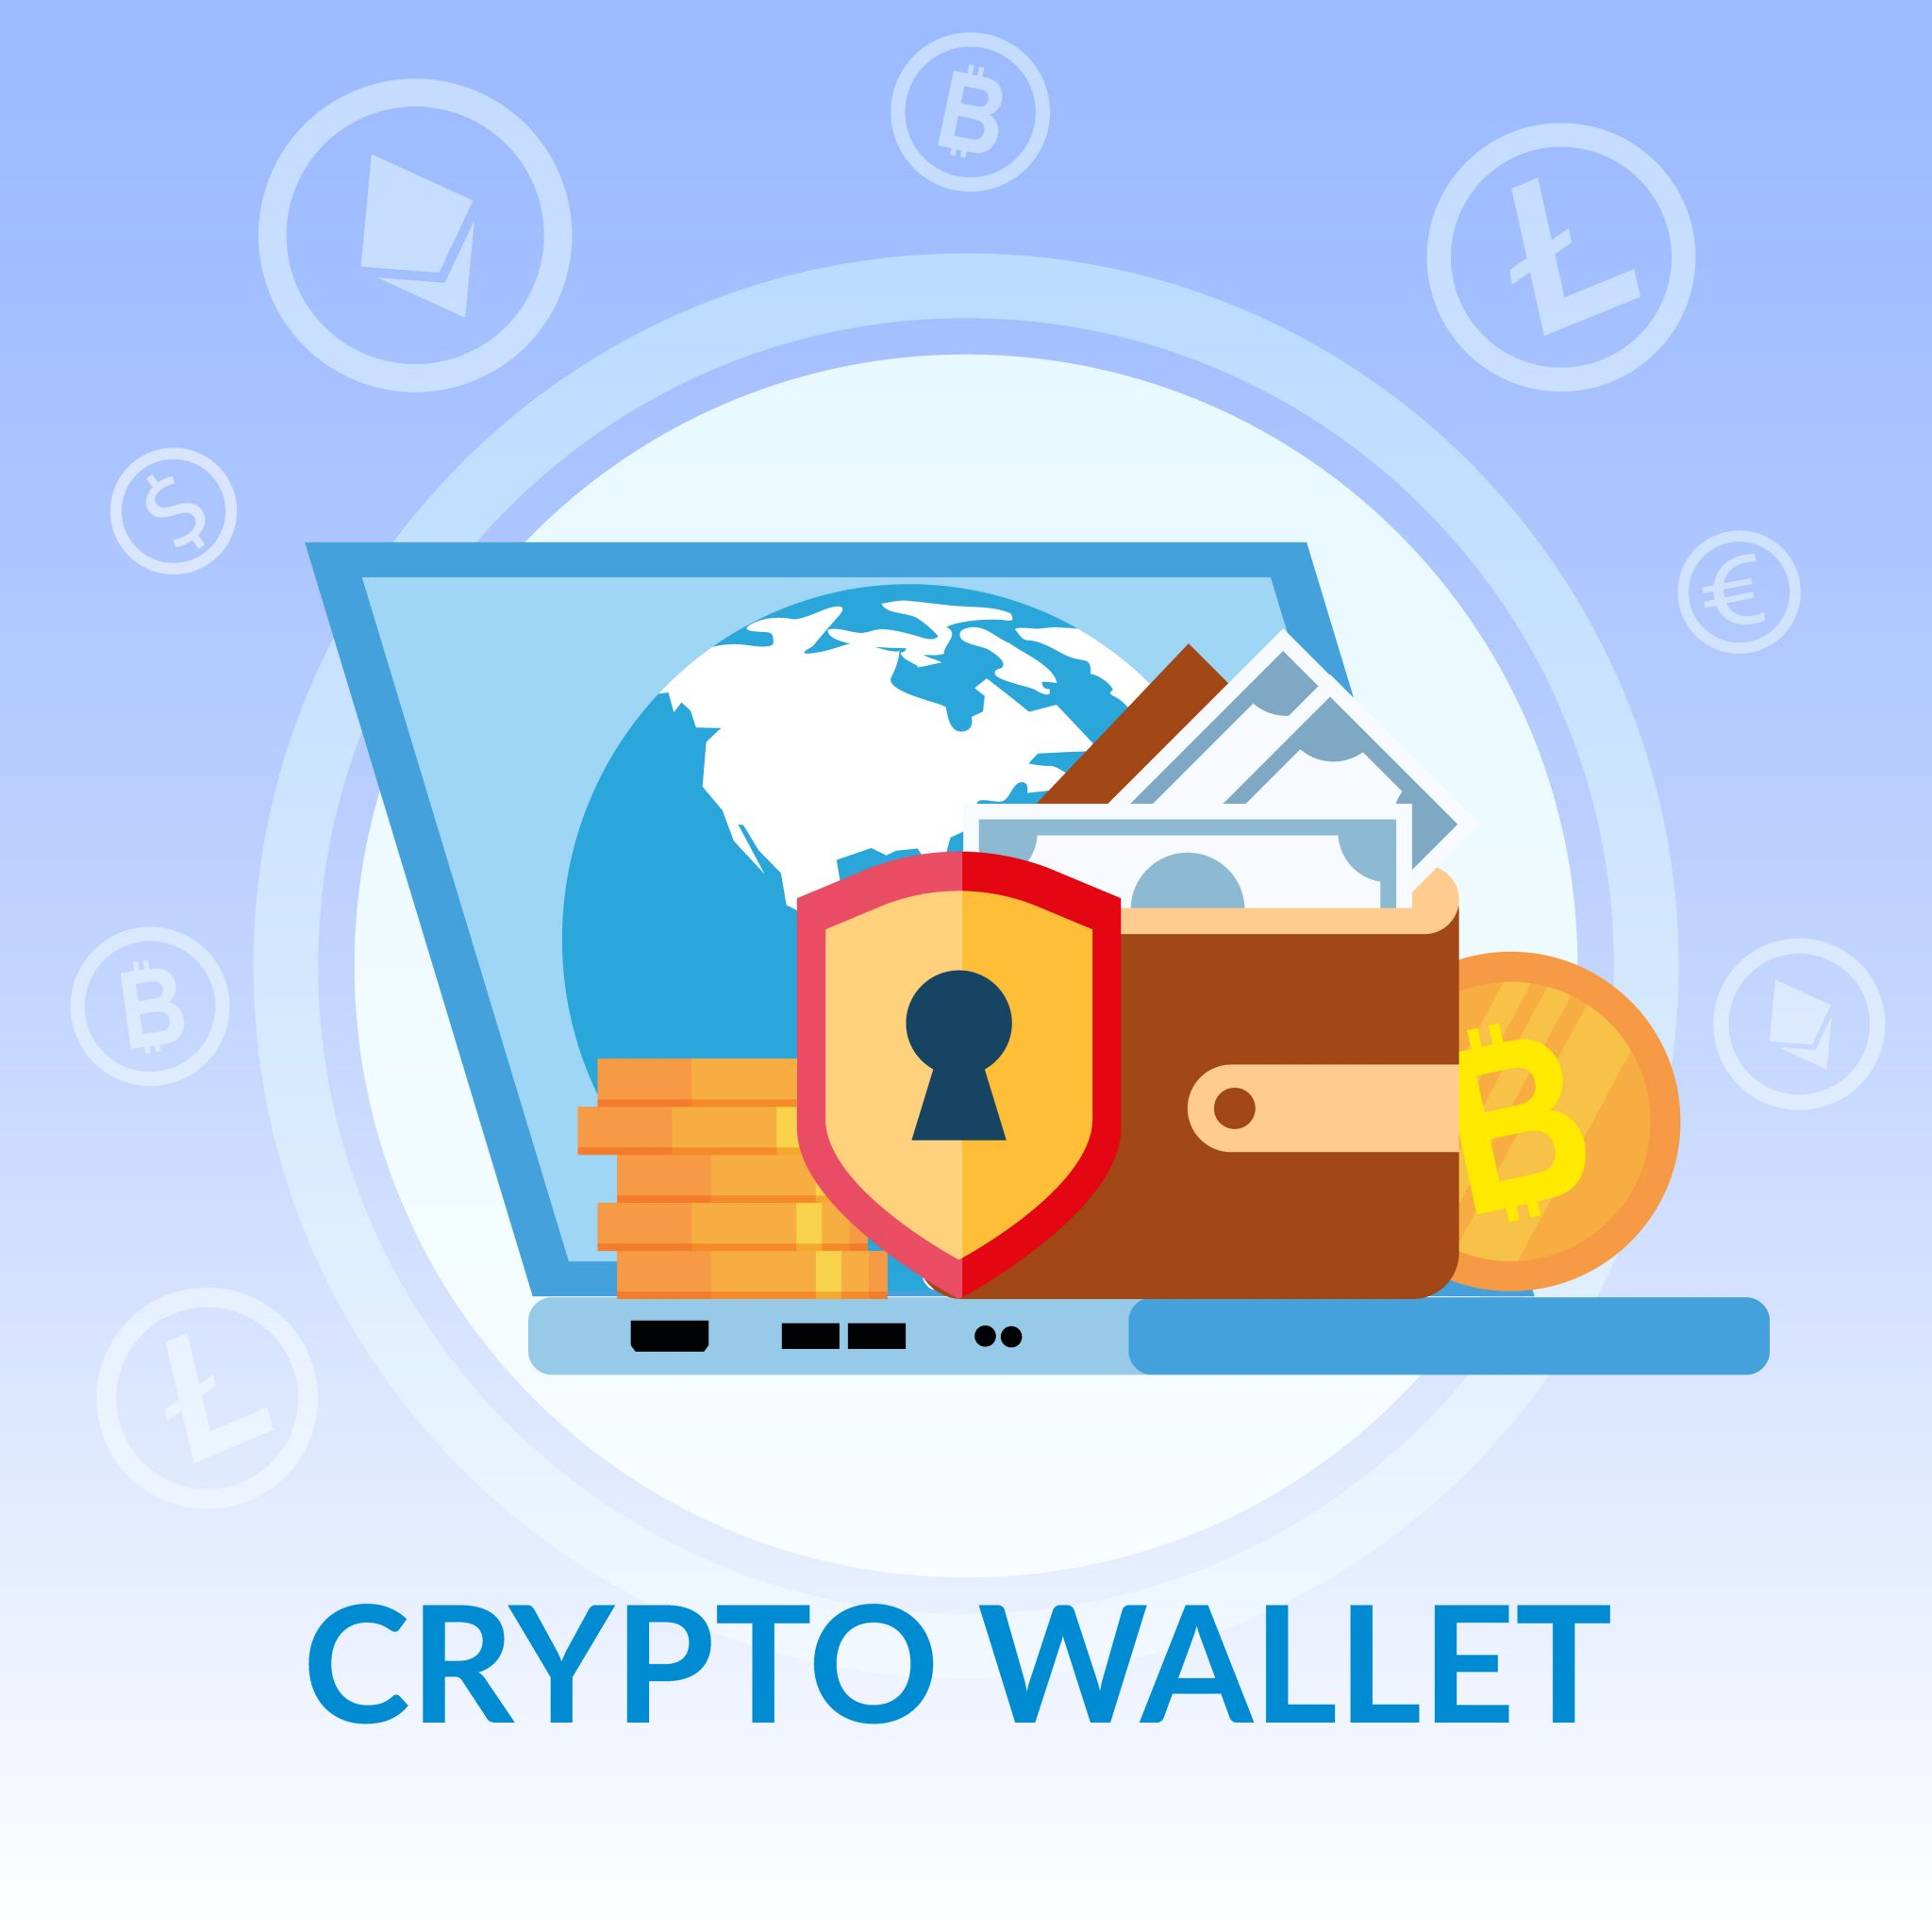 10 Best Cryptocurrency Wallets in 2020